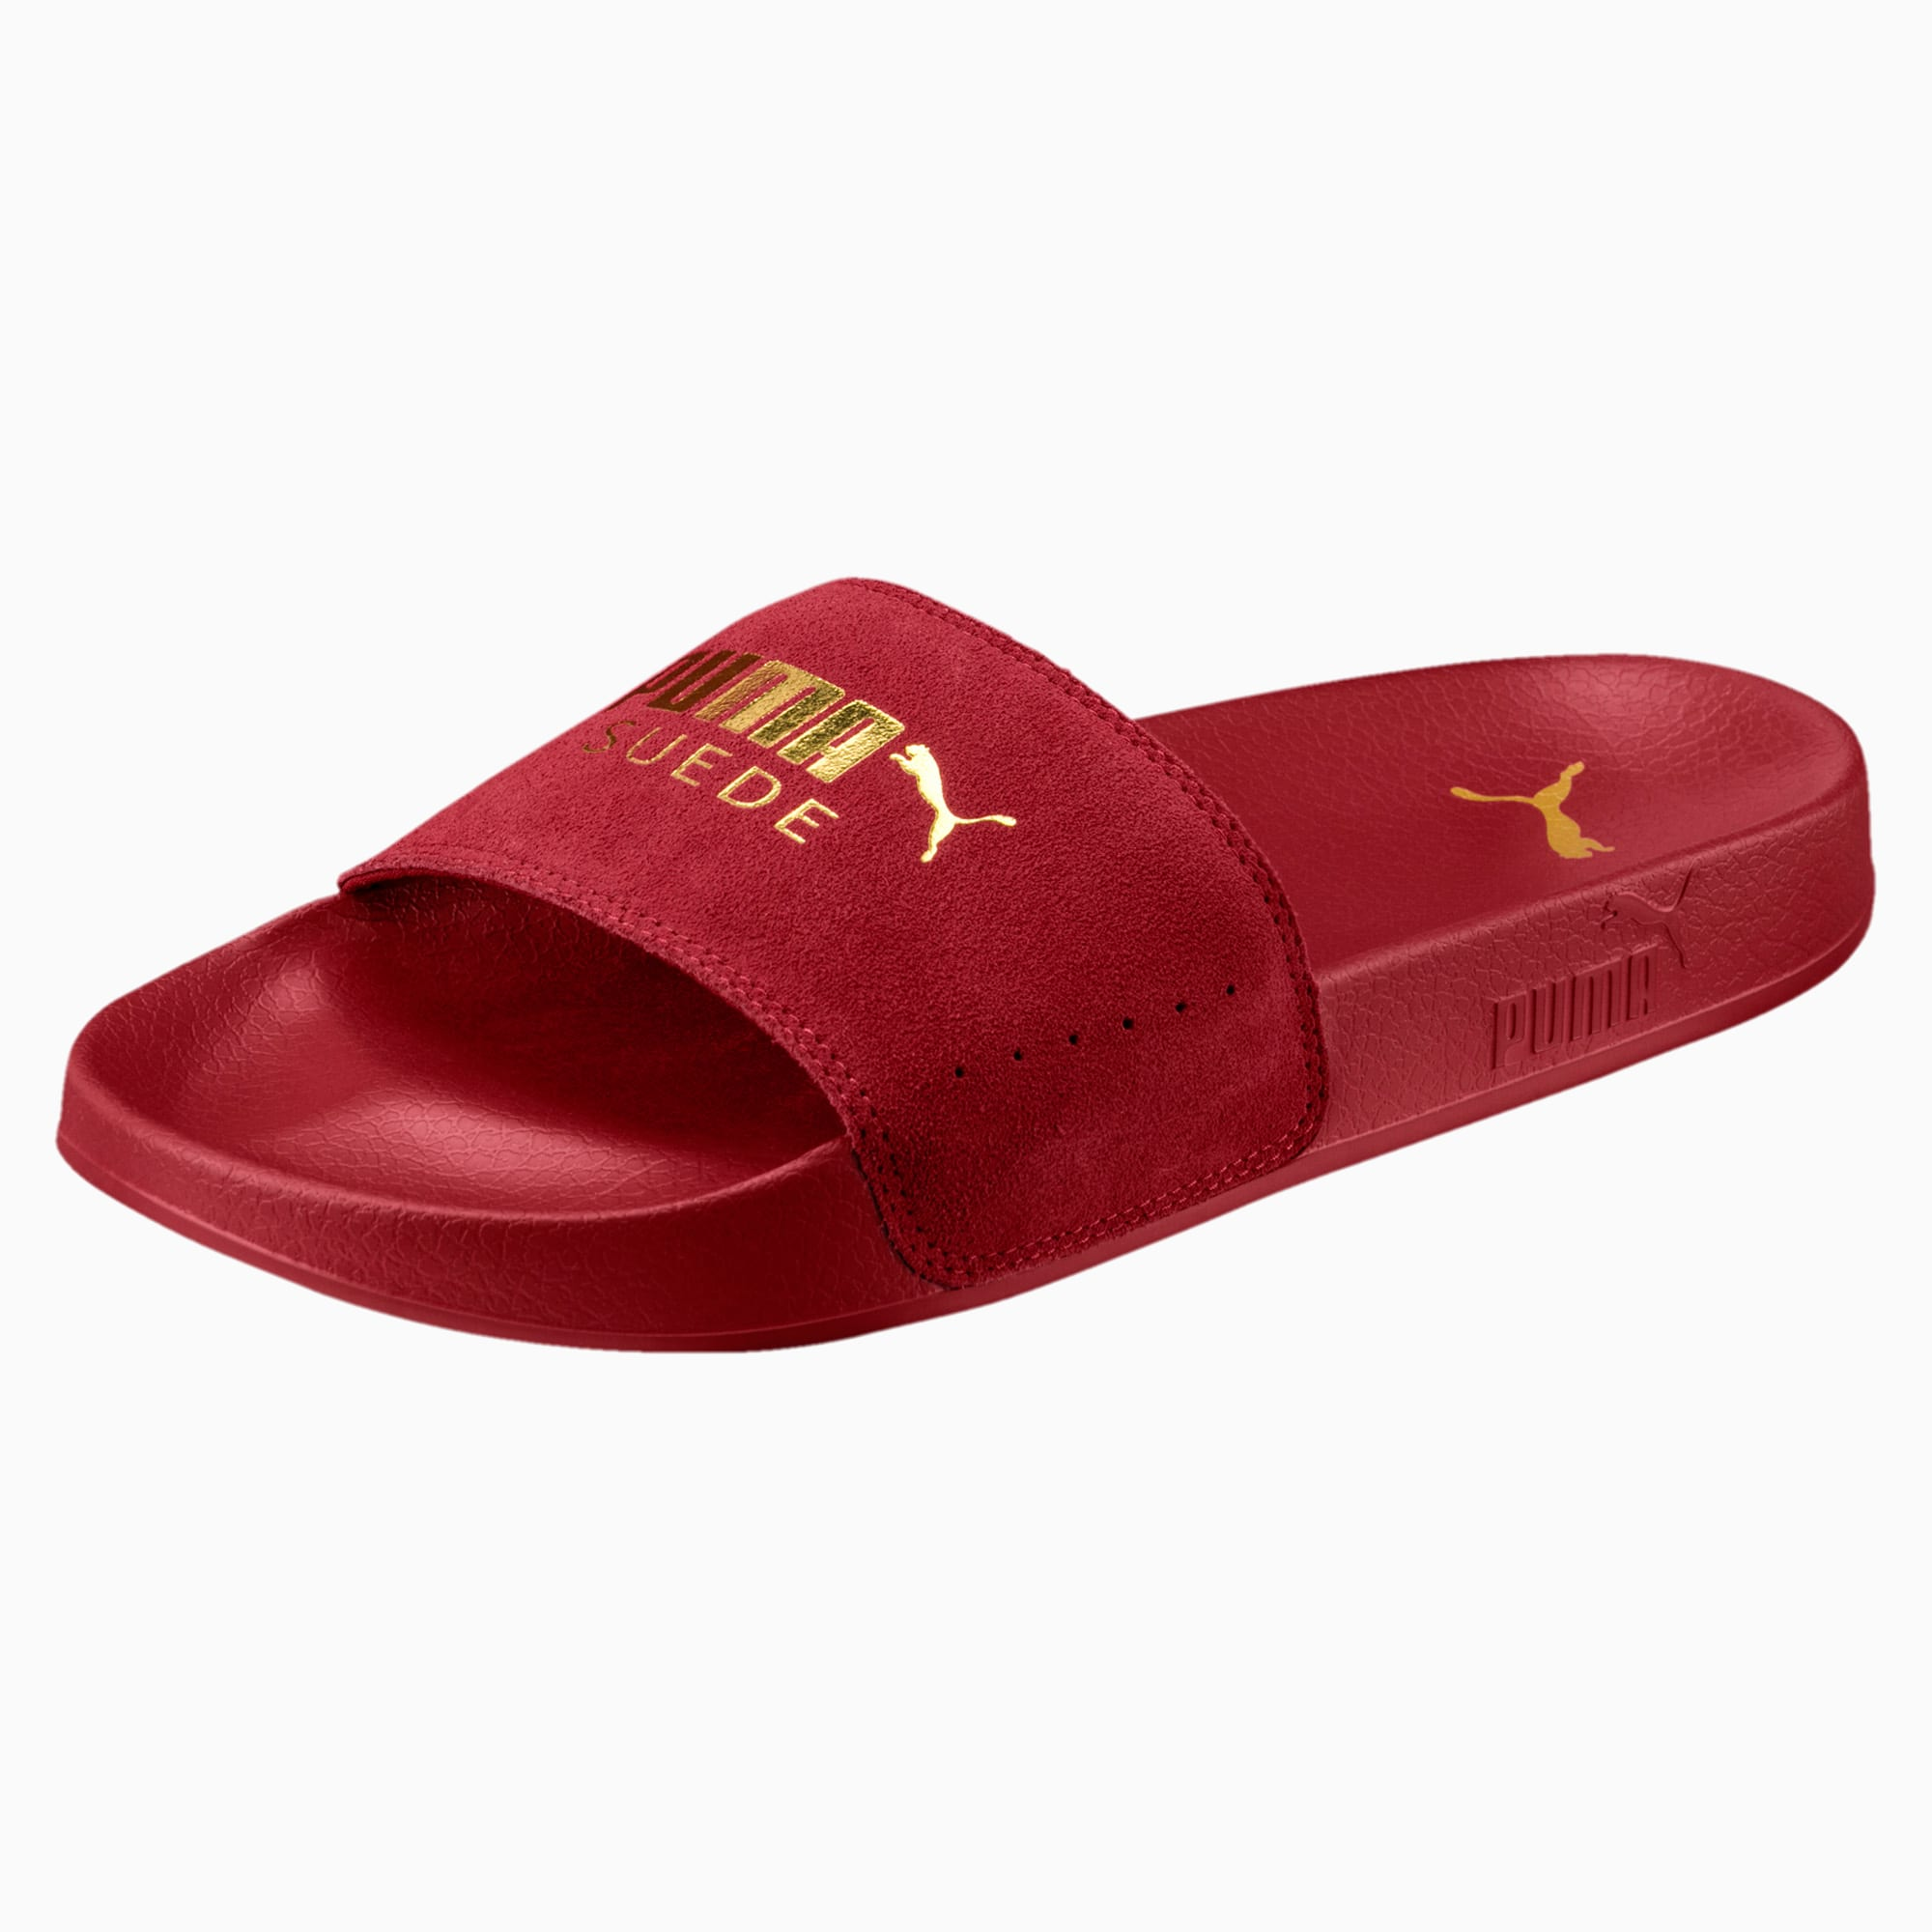 Leadcat Suede Men's Slides